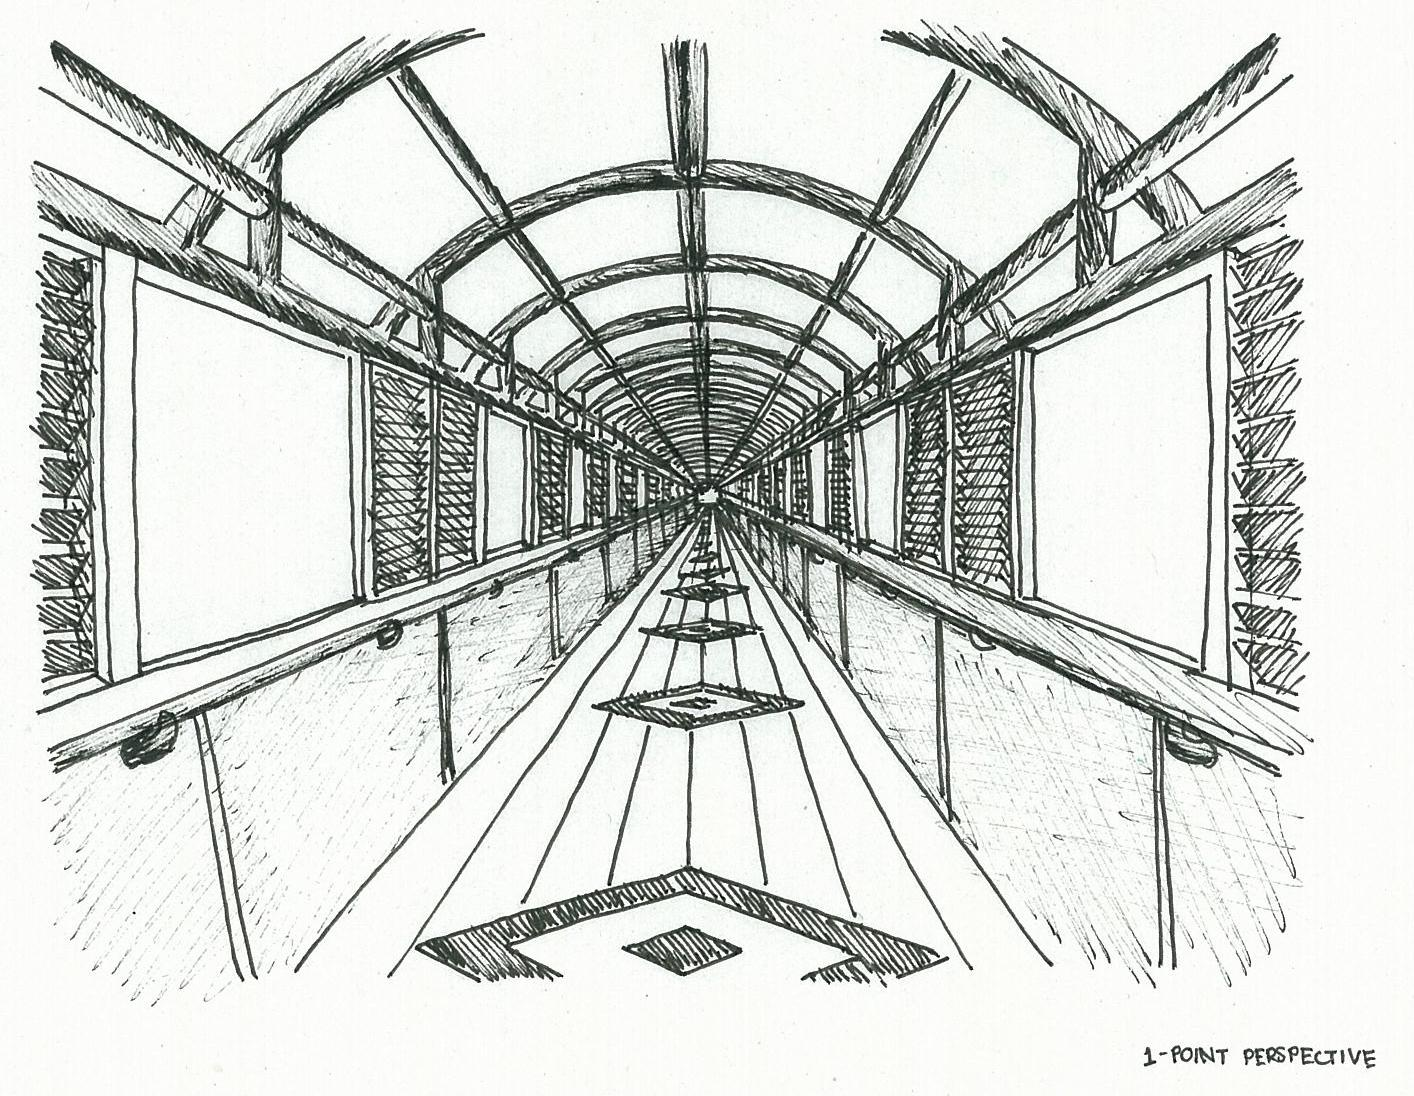 Simple One Point Perspective Drawing at GetDrawings.com ...Easy One Point Perspective Drawing